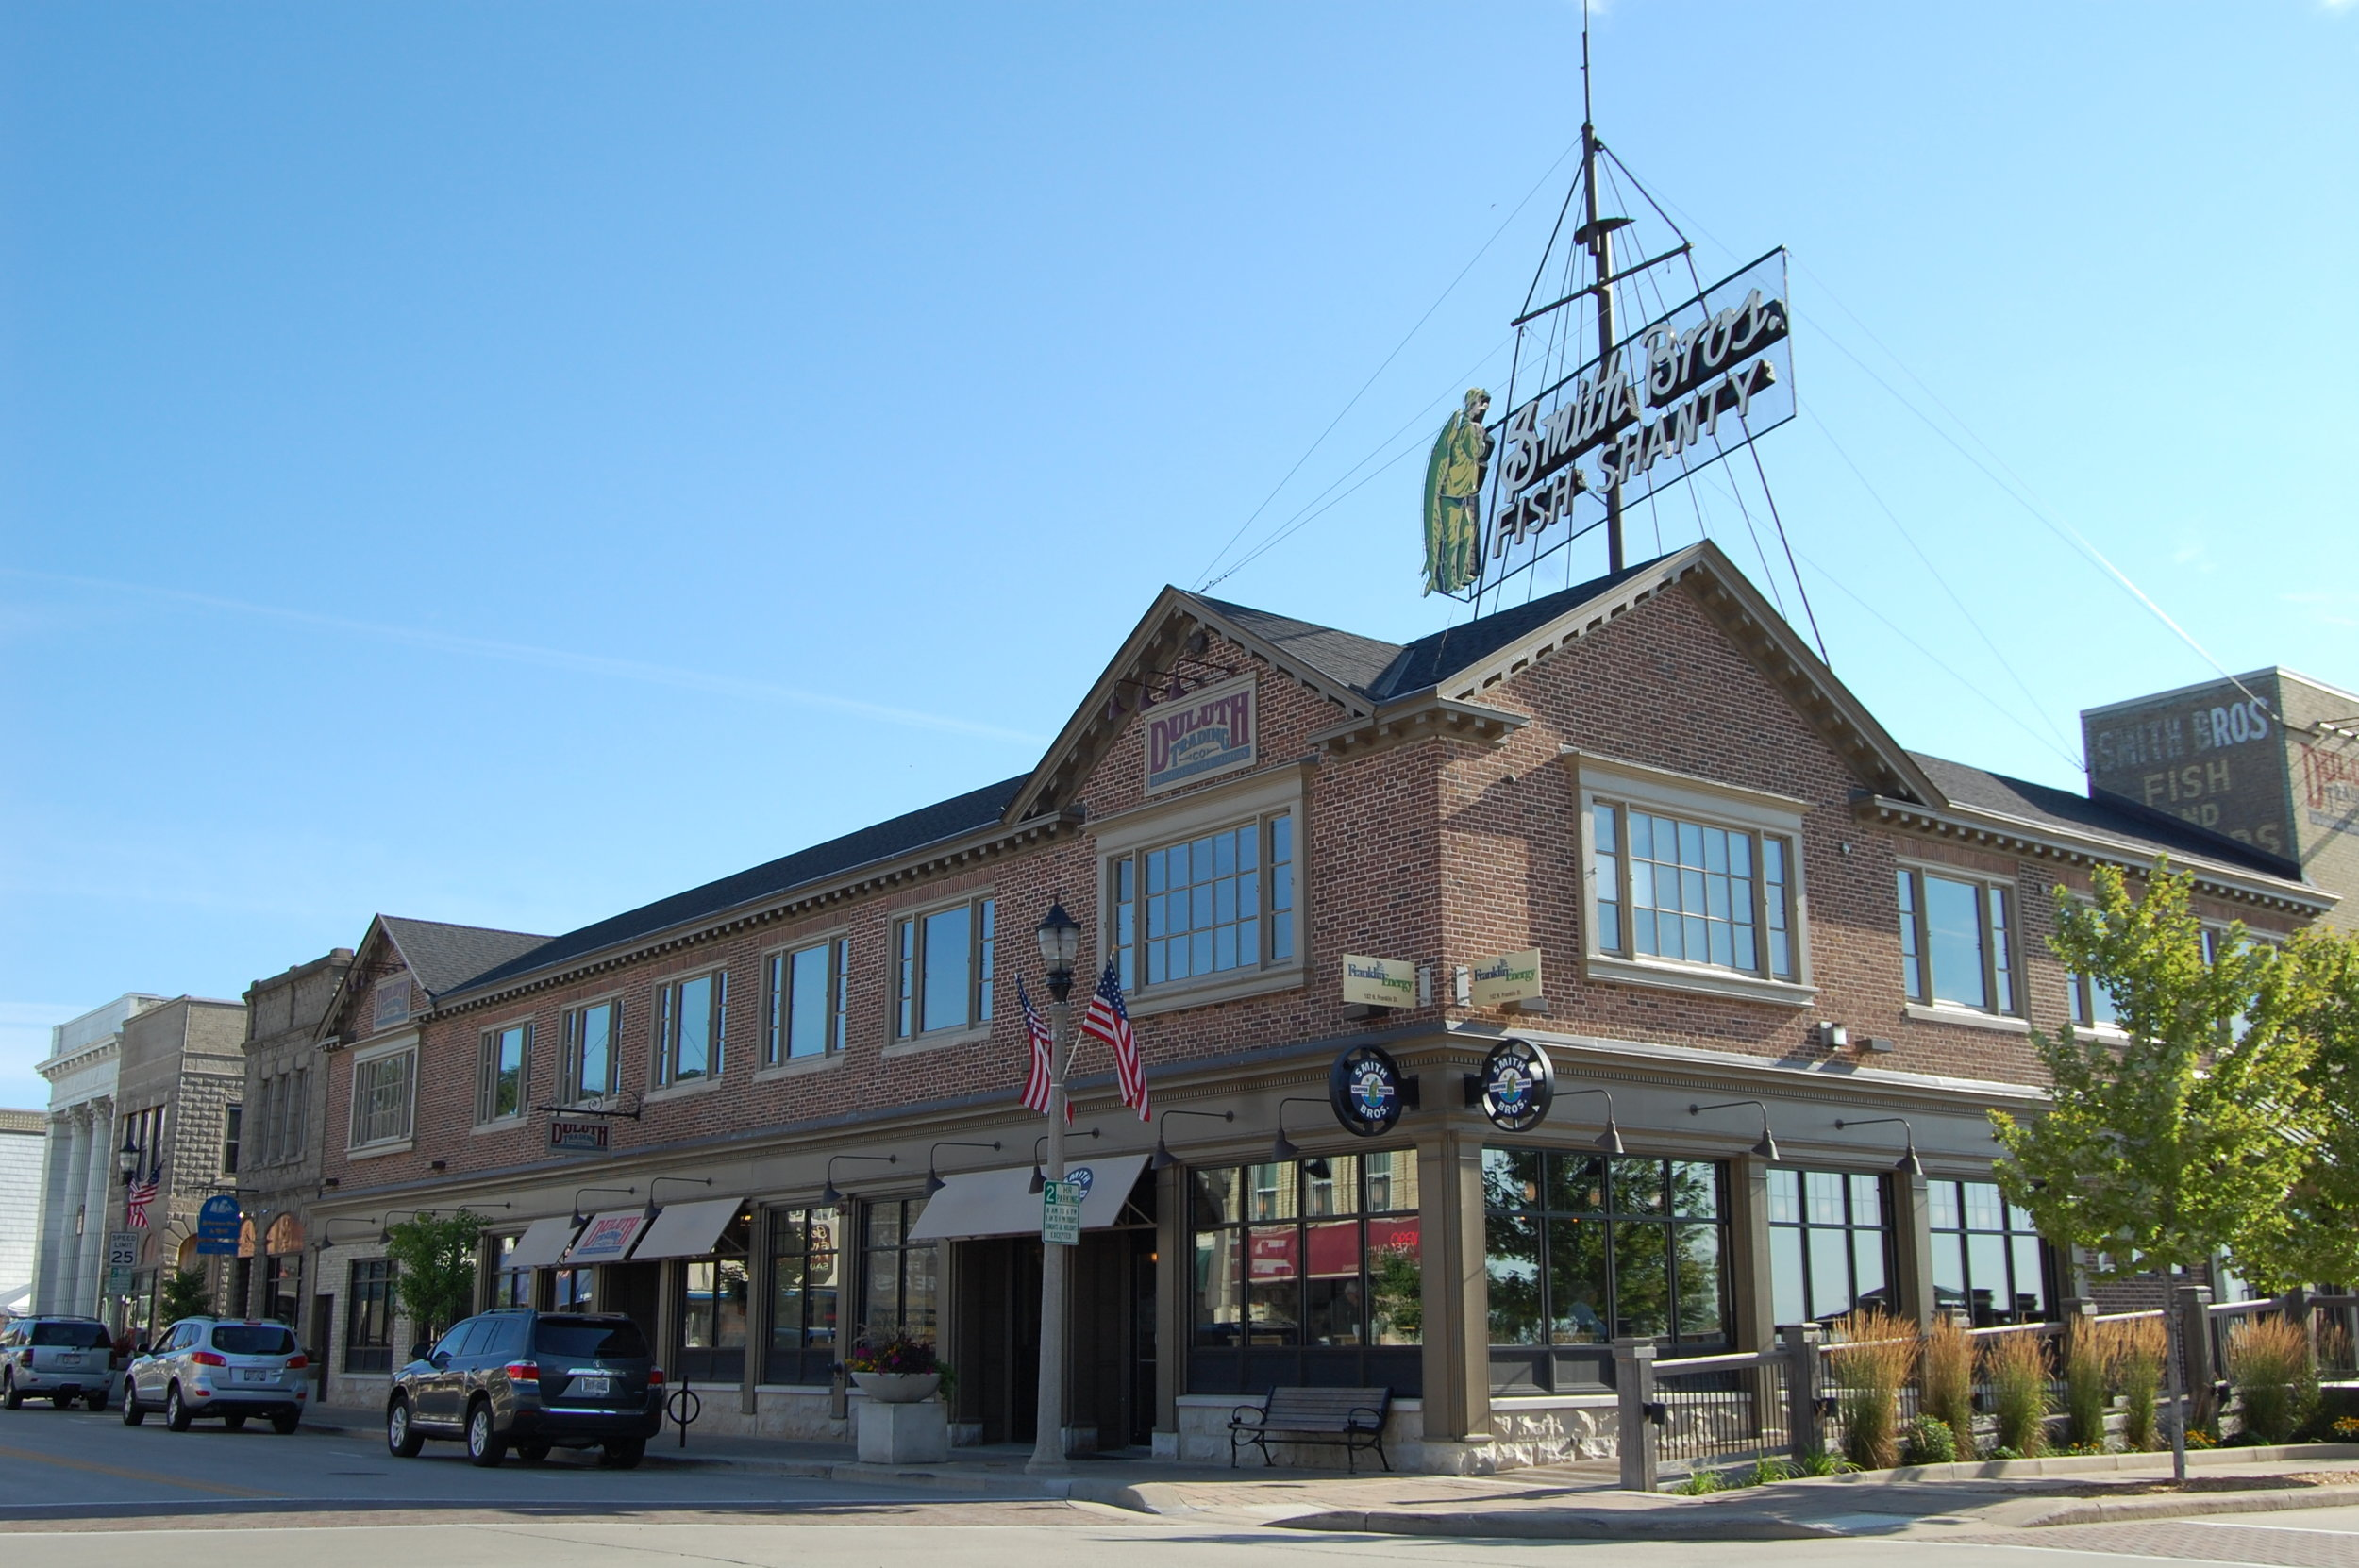 Smith Brothers Building/Duluth Trading Company - Port Washington, WI